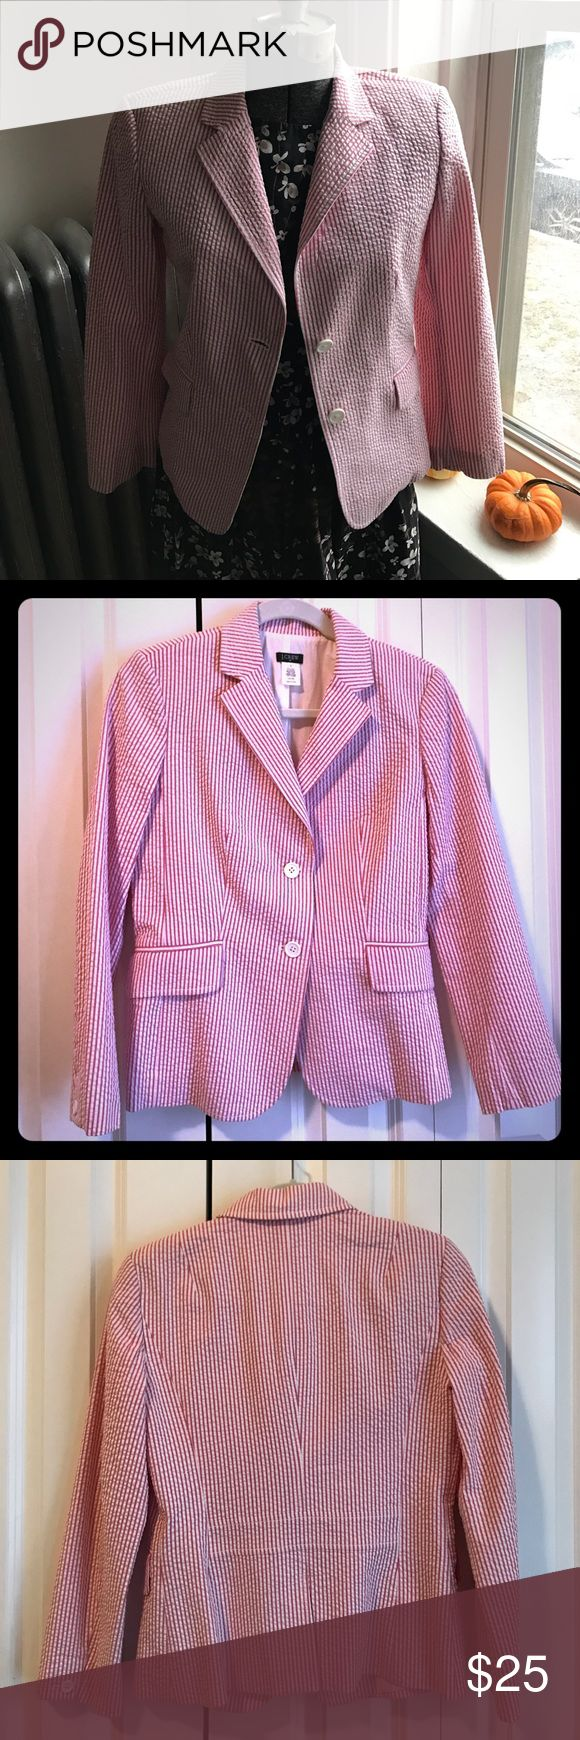 Pink and white J. crew searsucker suit jacket Pink and white sear sucker suit jacket. From J. Crew. Like new. J. Crew Jackets & Coats Blazers